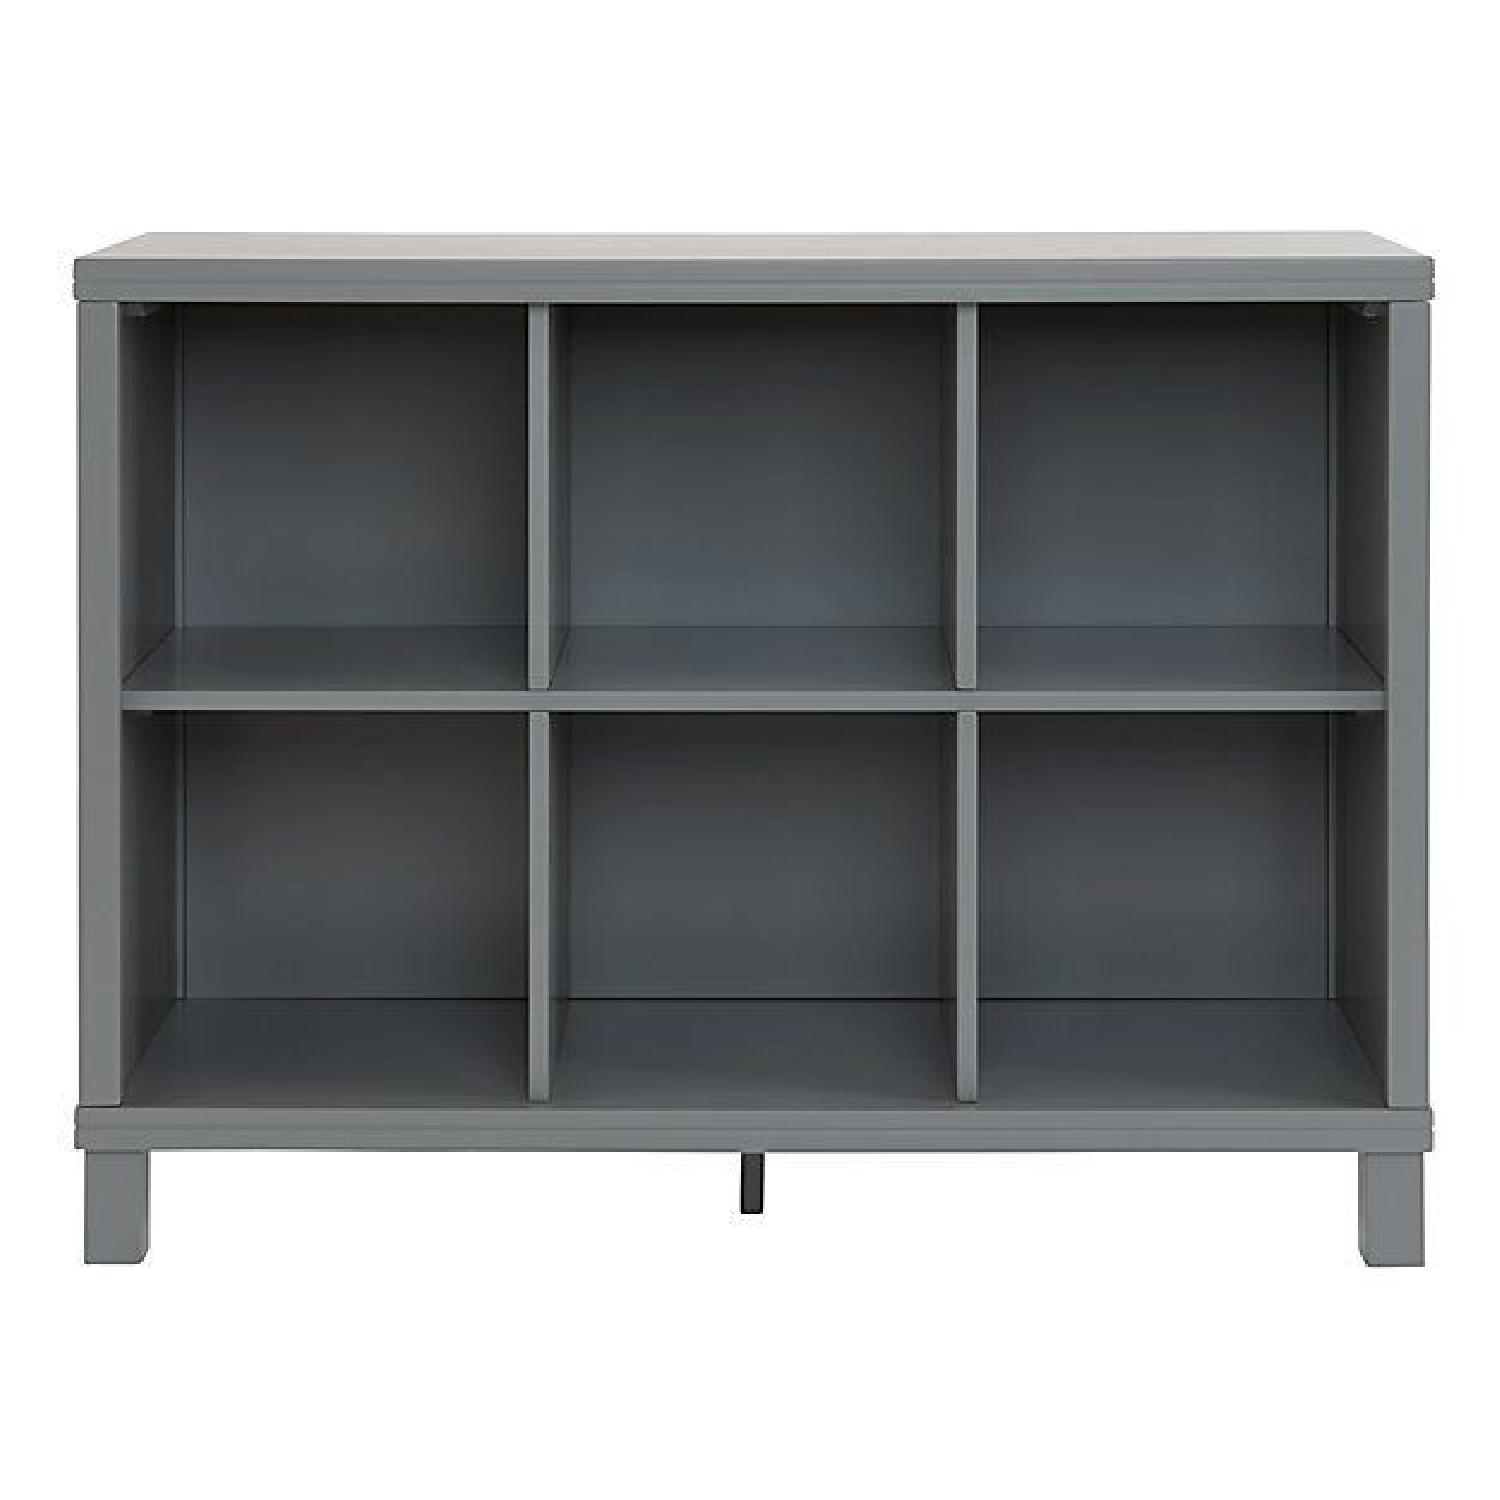 doors bookcase overstock glass shipping free avenue green product today soft with garden sliding grey home abbeywood